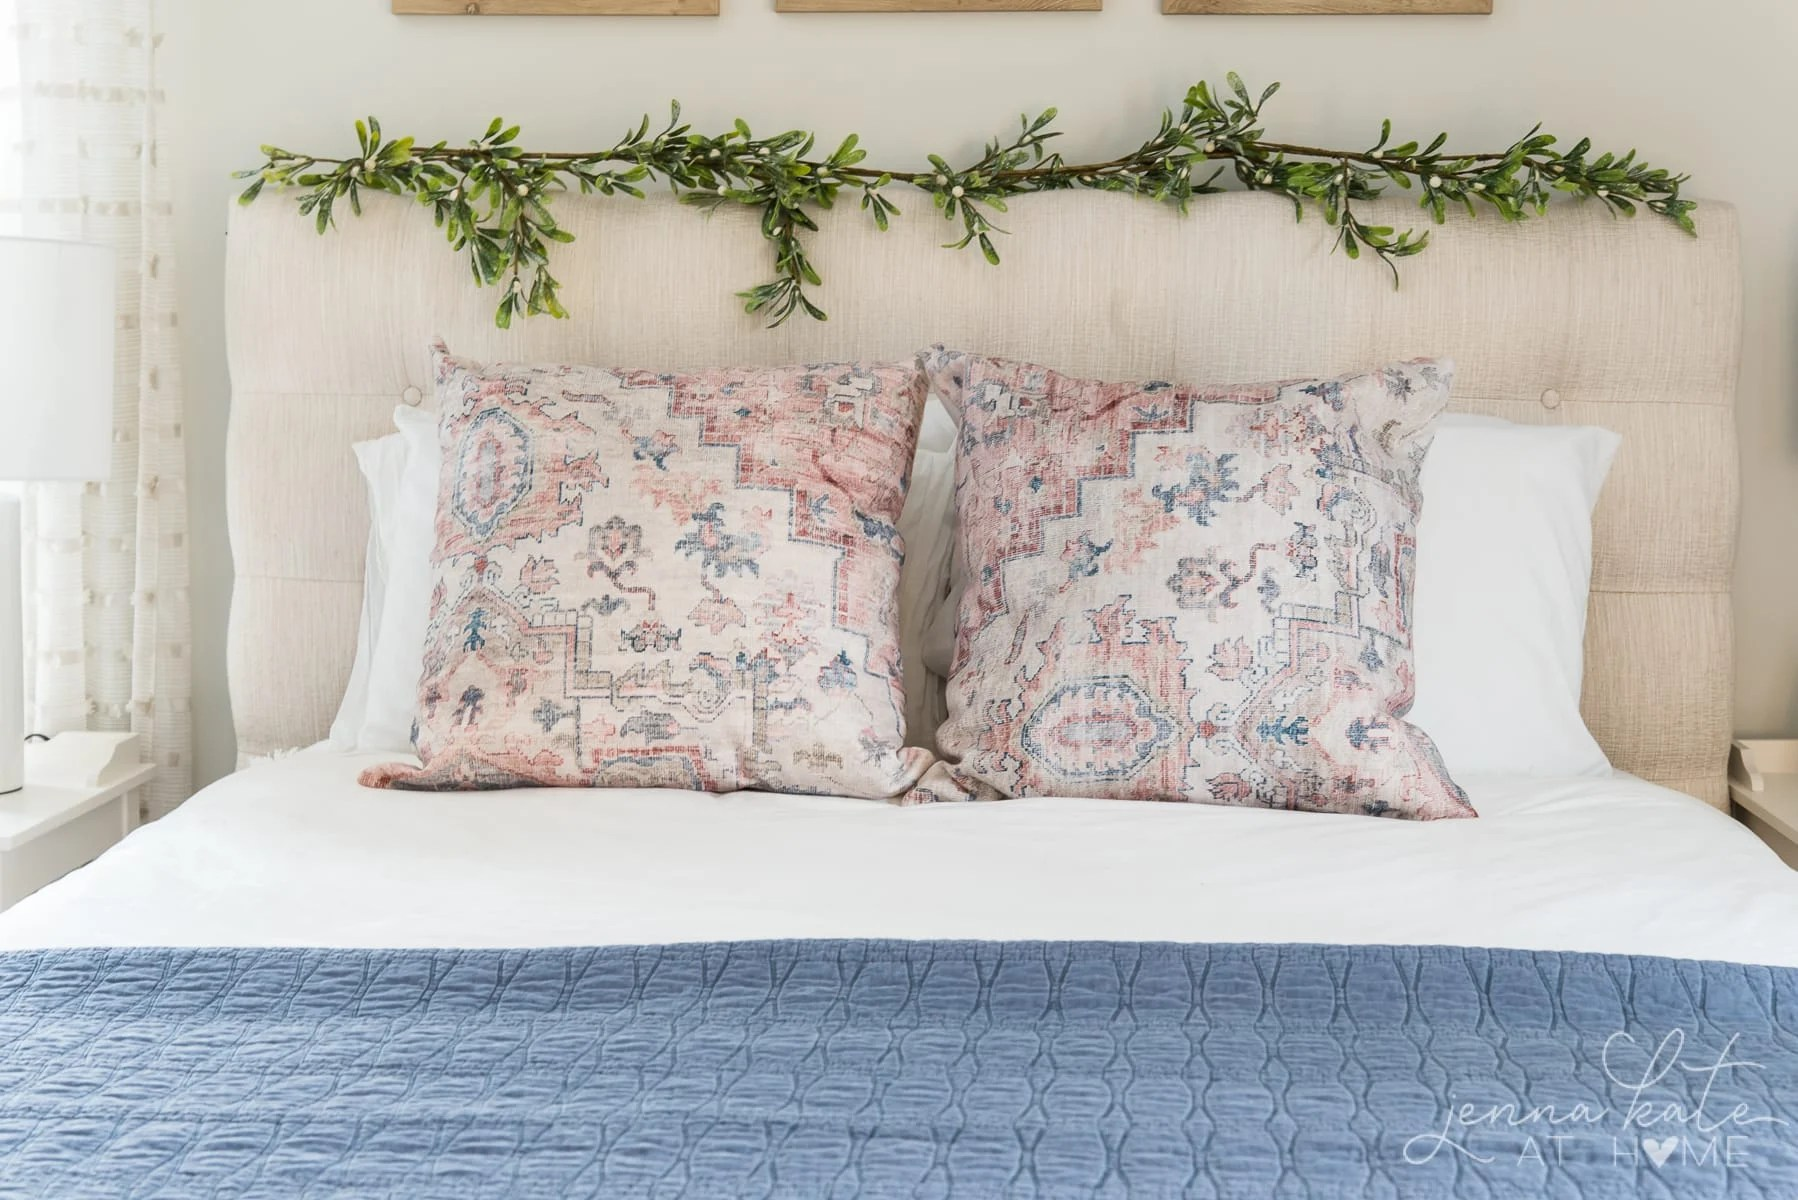 Pink and blue throw pillows on the bed with mistletoe garland on the headboard